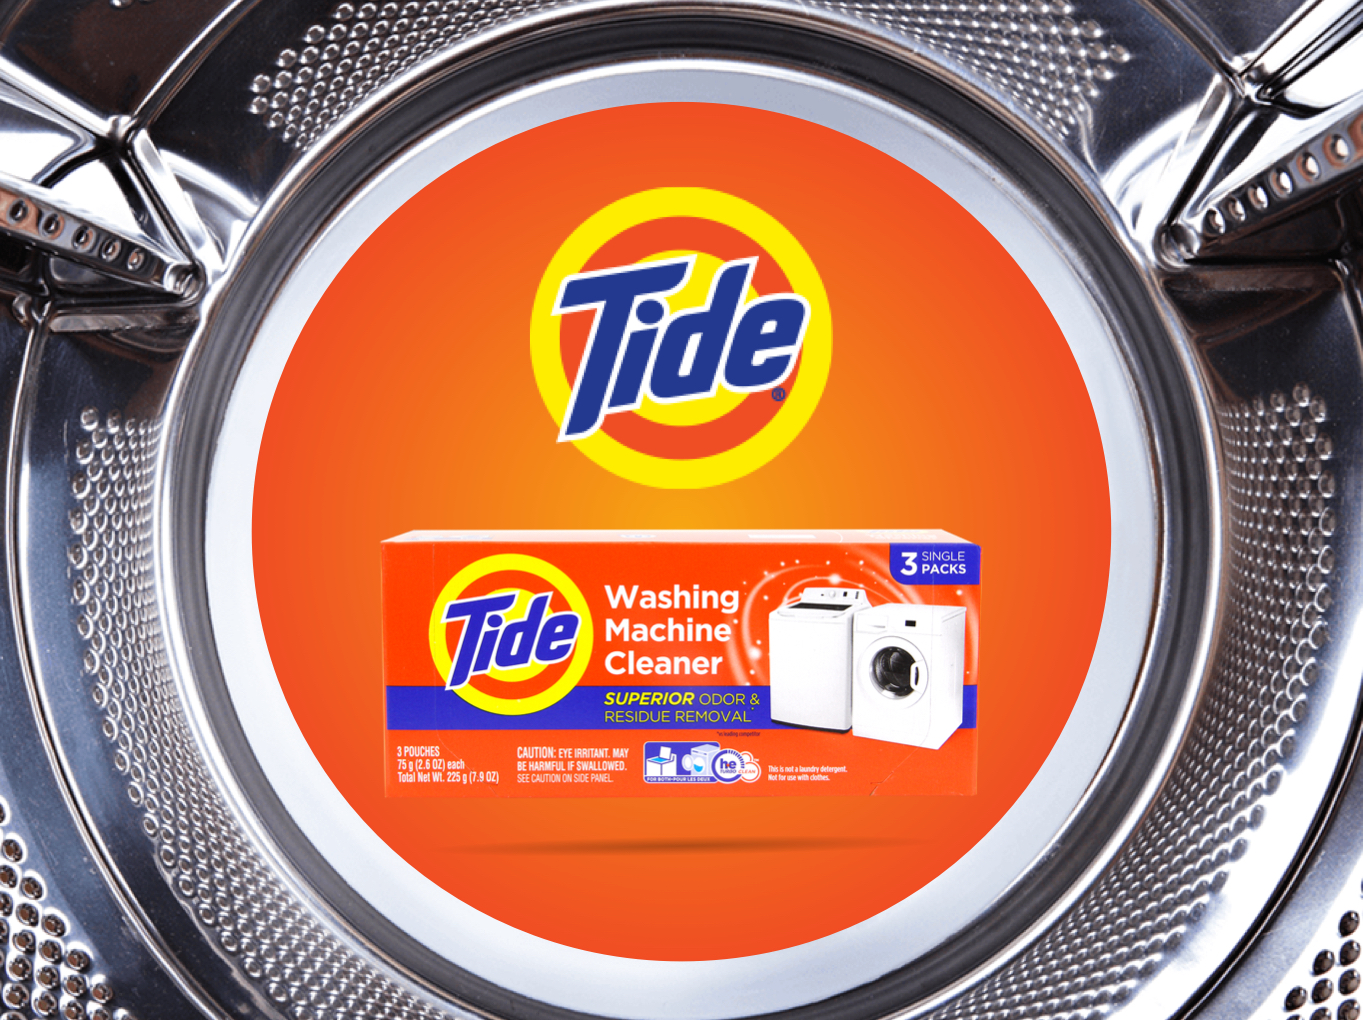 Tide feature image